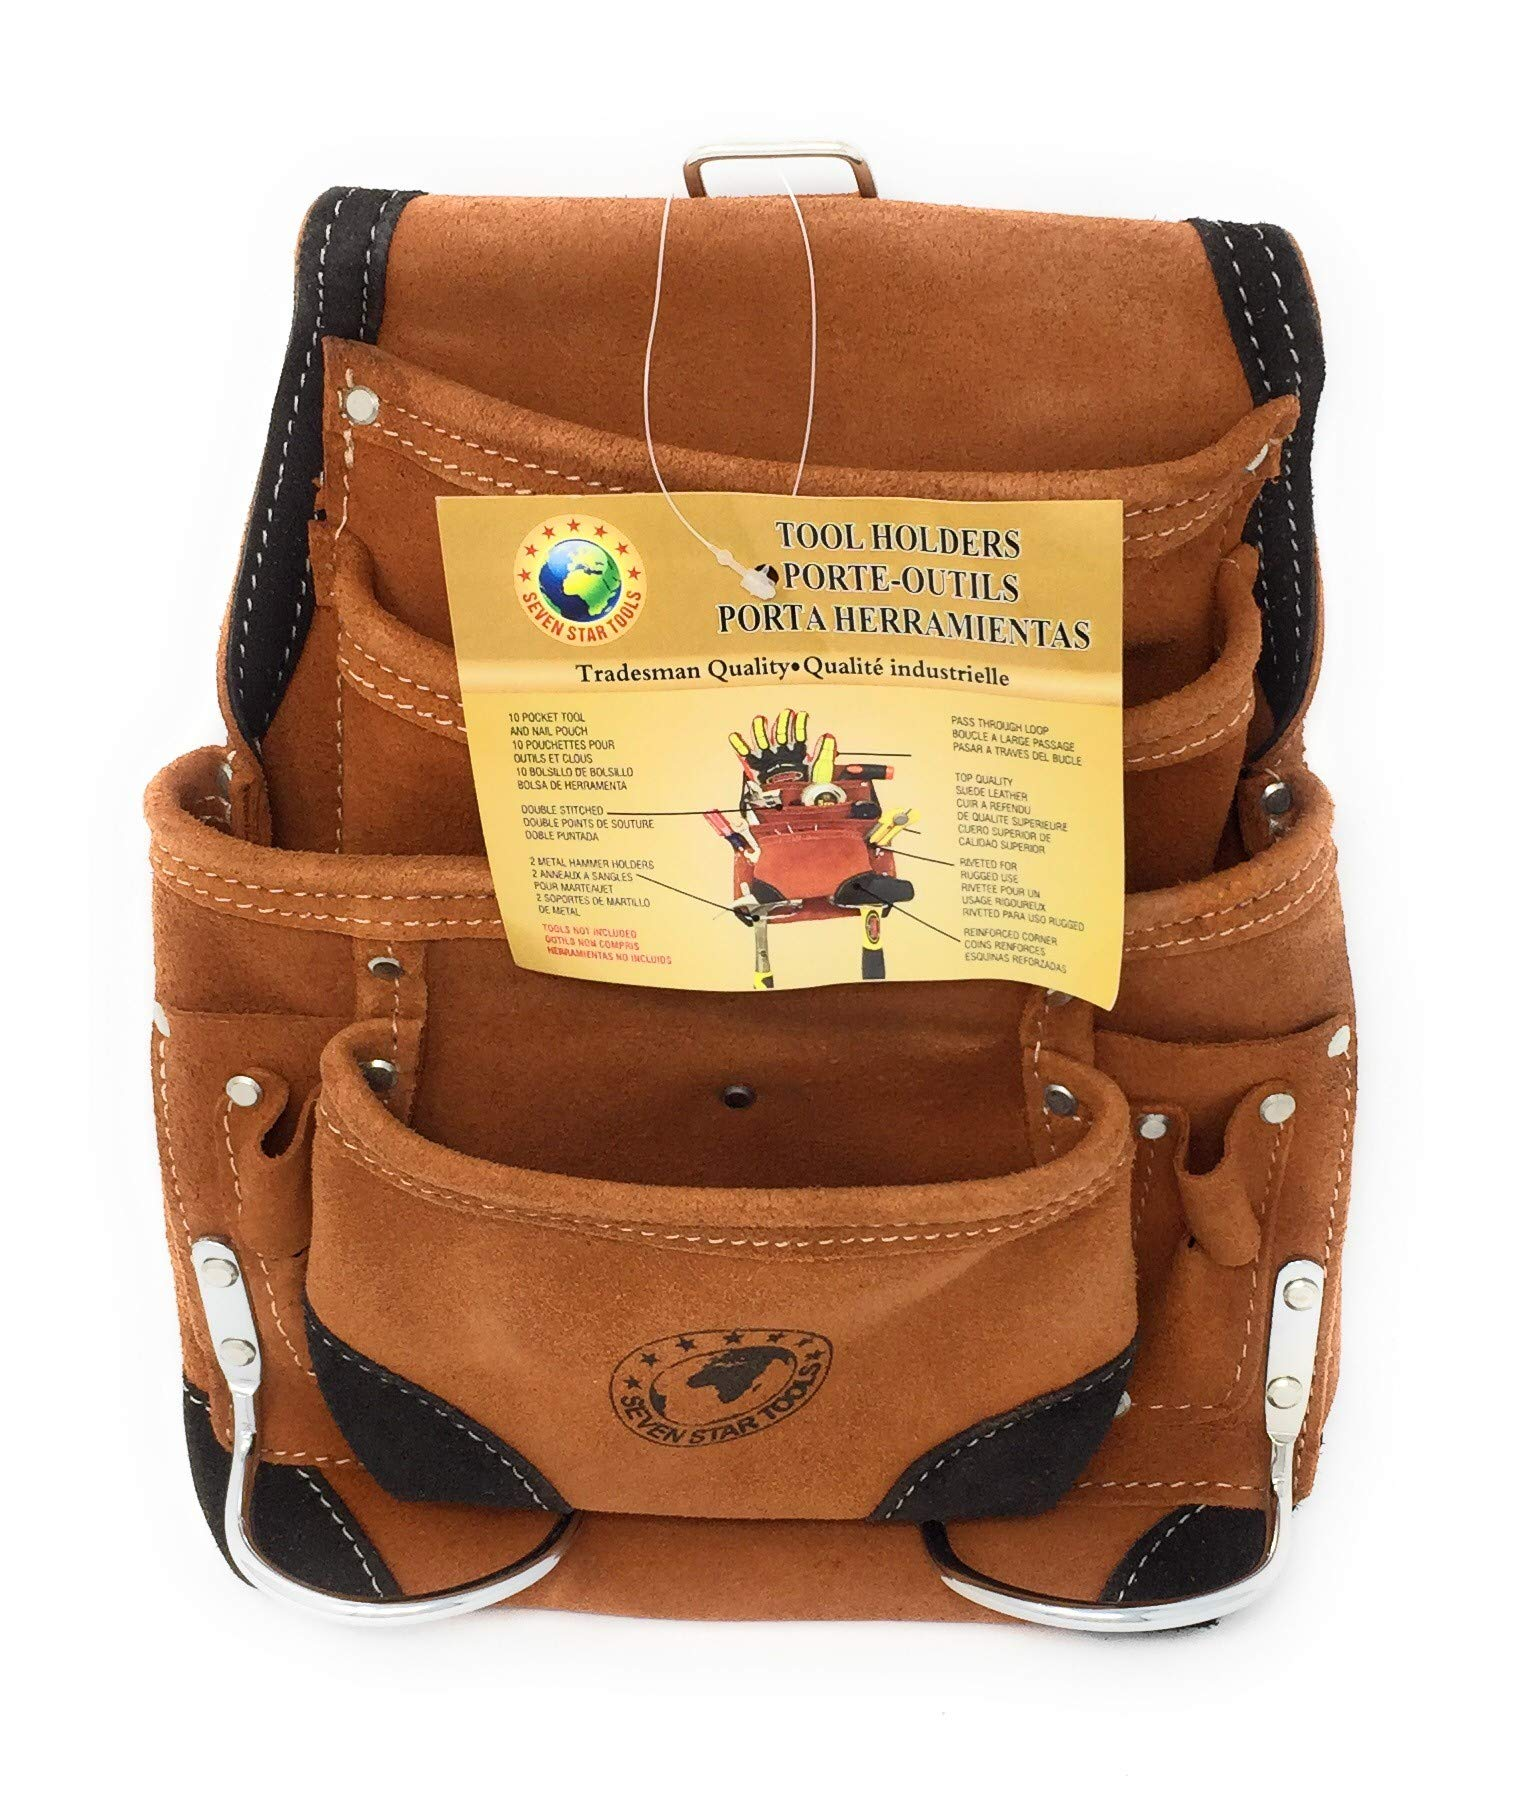 Seven Star Tools P-1200RC 10 Pocket Suede Leather Tool Pouch with Reinforced Corners and Tunnel Loop